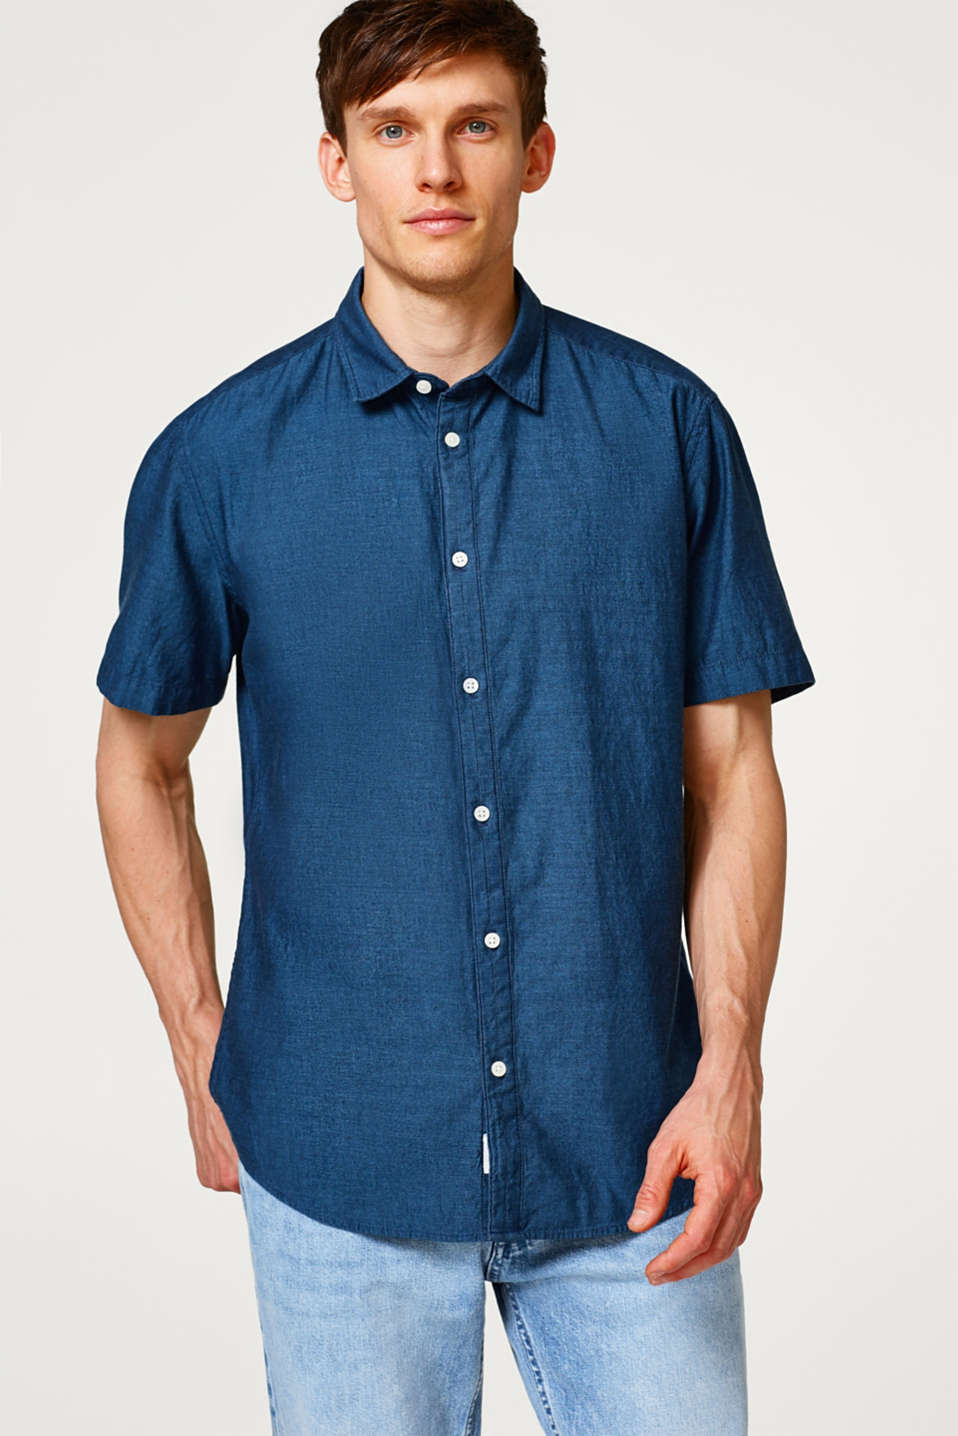 Esprit - Short sleeve shirt in lightweight cotton denim